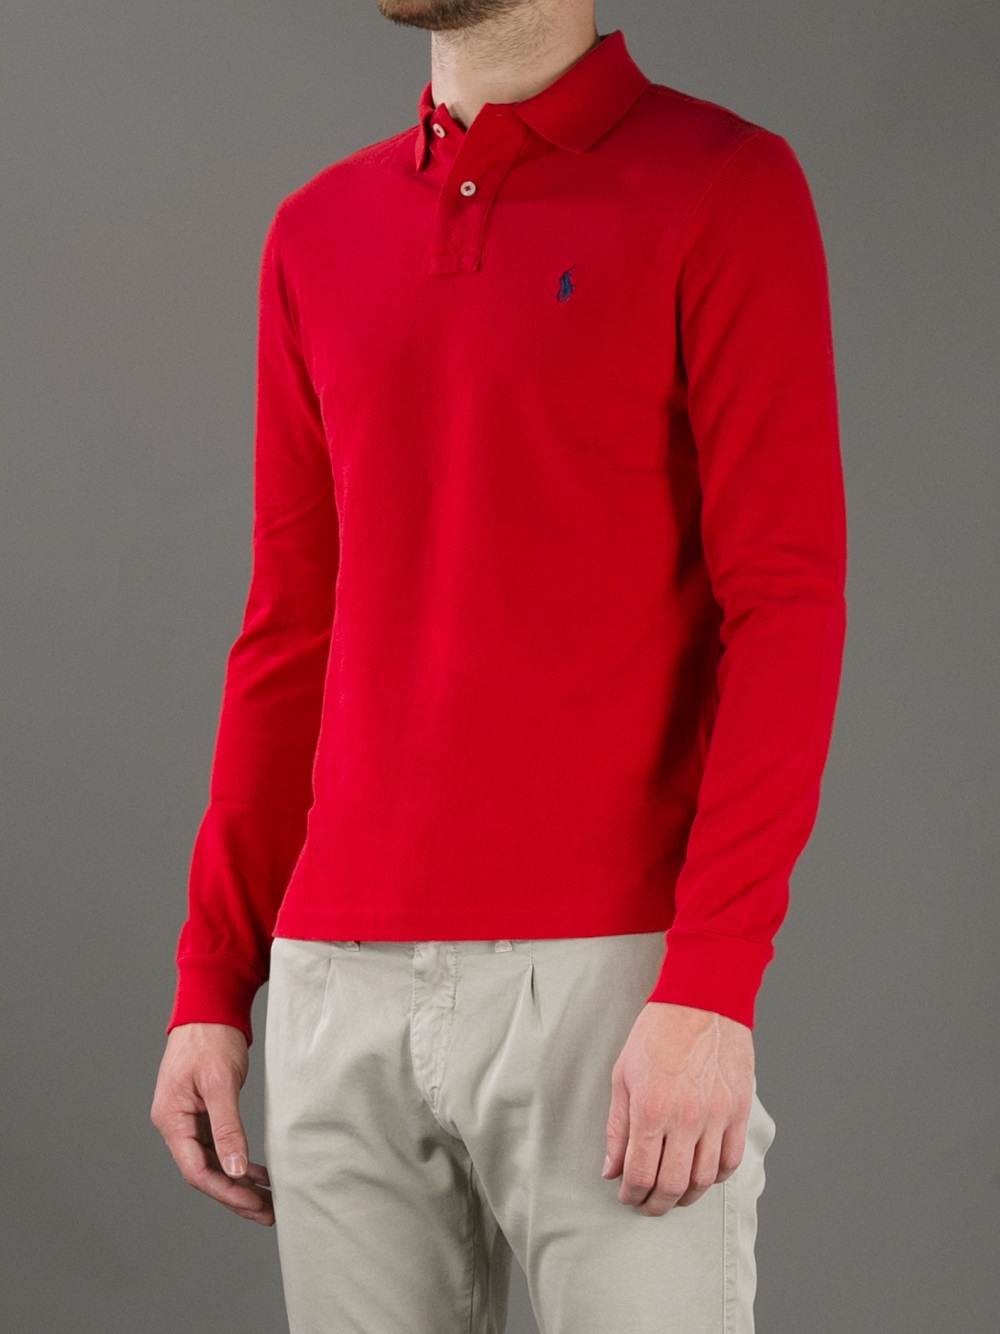 Lyst - Polo Ralph Lauren Long Sleeve Polo Shirt in Red for Men 46014efe9b01